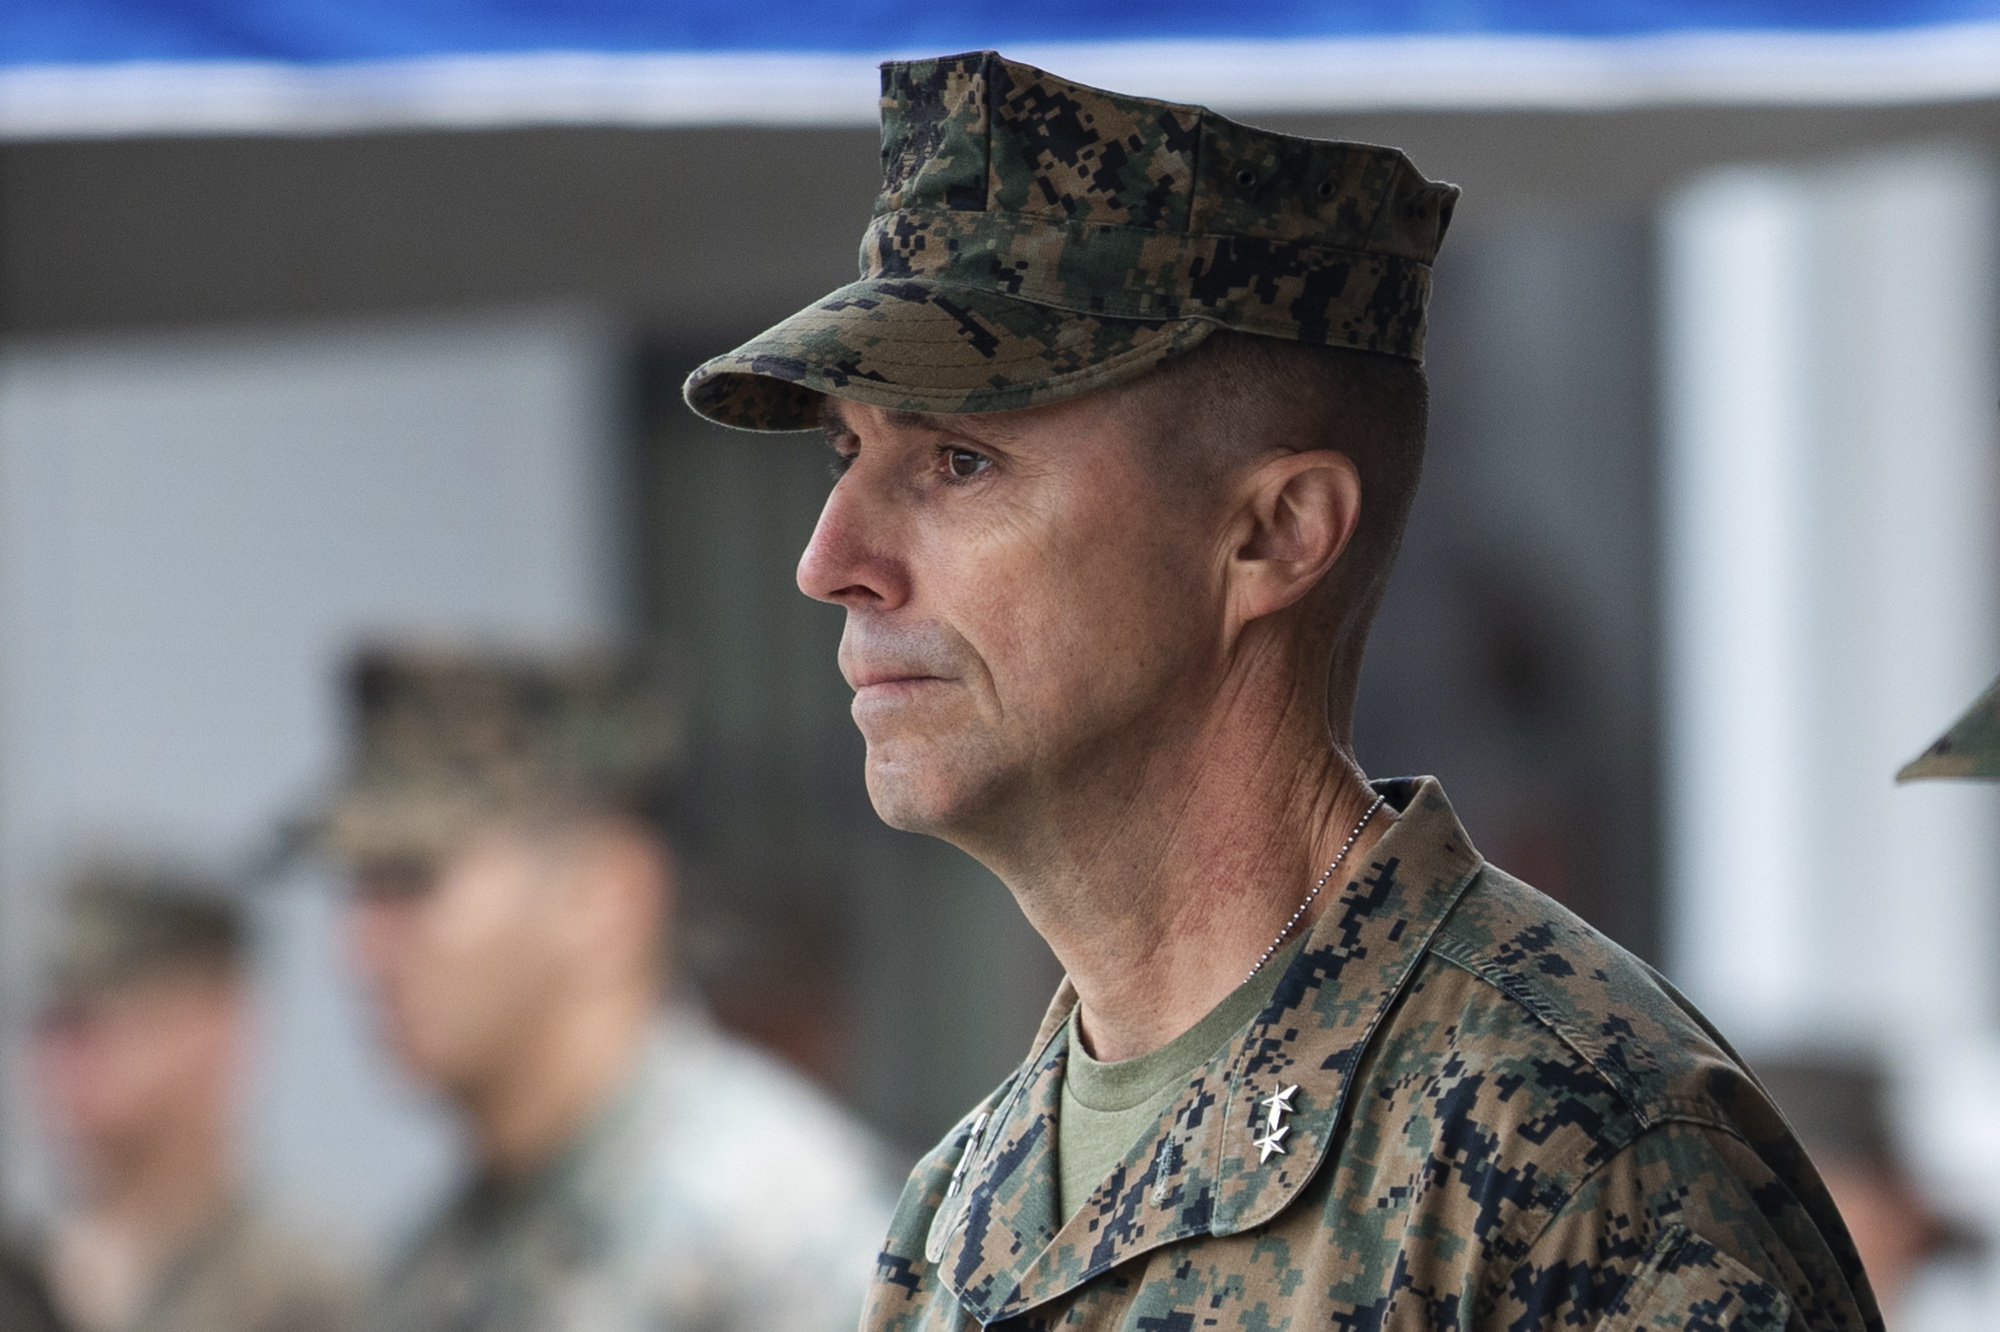 In this Sept. 11, 2020 photo provided by the U.S. Marine Corps, U.S. Marine Maj. Gen. Robert F. Castellvi is shown during a ceremony at Marine Corps Base Camp Pendleton in California. Officials announced Wednesday, June 9, 2021 that Castellvi will be relieved of his duties for failing to properly train Marines and sailors and evaluate the platoon before a training exercise in the summer of 2020 when a seafaring tank sank off the Southern California coast, killing nine troops. (Cpl. Jailine L. AliceaSantiago/U.S. Marine Corps via AP)